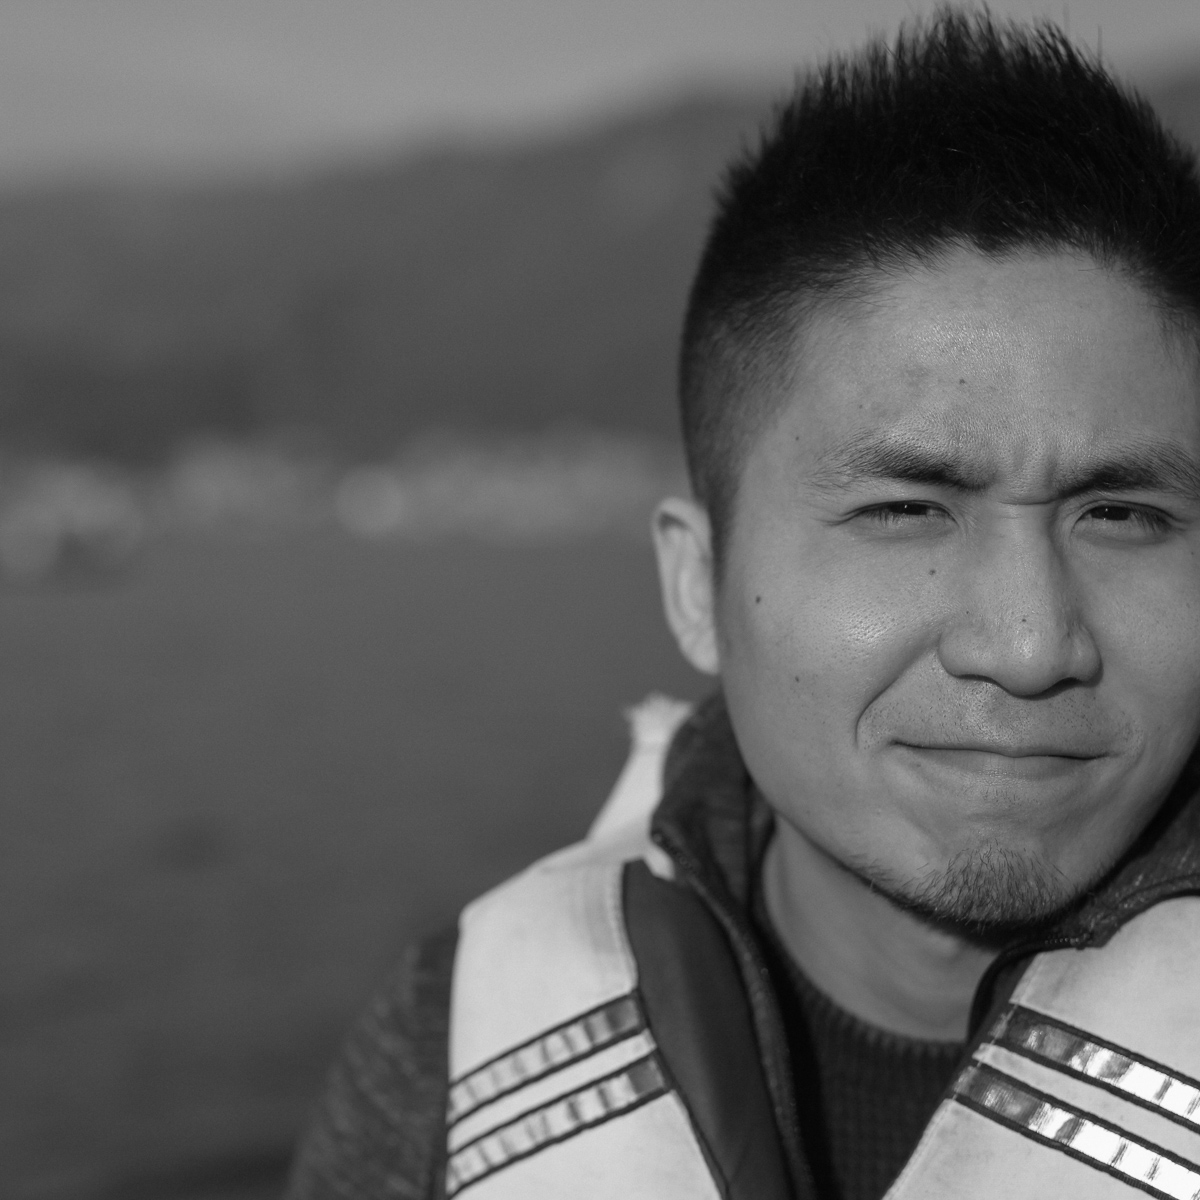 Jaron Soh - Founder | Mission ChiefJaron started Artisan & Fox after a chance meeting with artisans in the Himalayas, in the aftermath of the 2015 earthquake. He leads business development and partnerships, forging relationships with artisans from Afghanistan to Kenya. Lover of anthropology + philosophy.